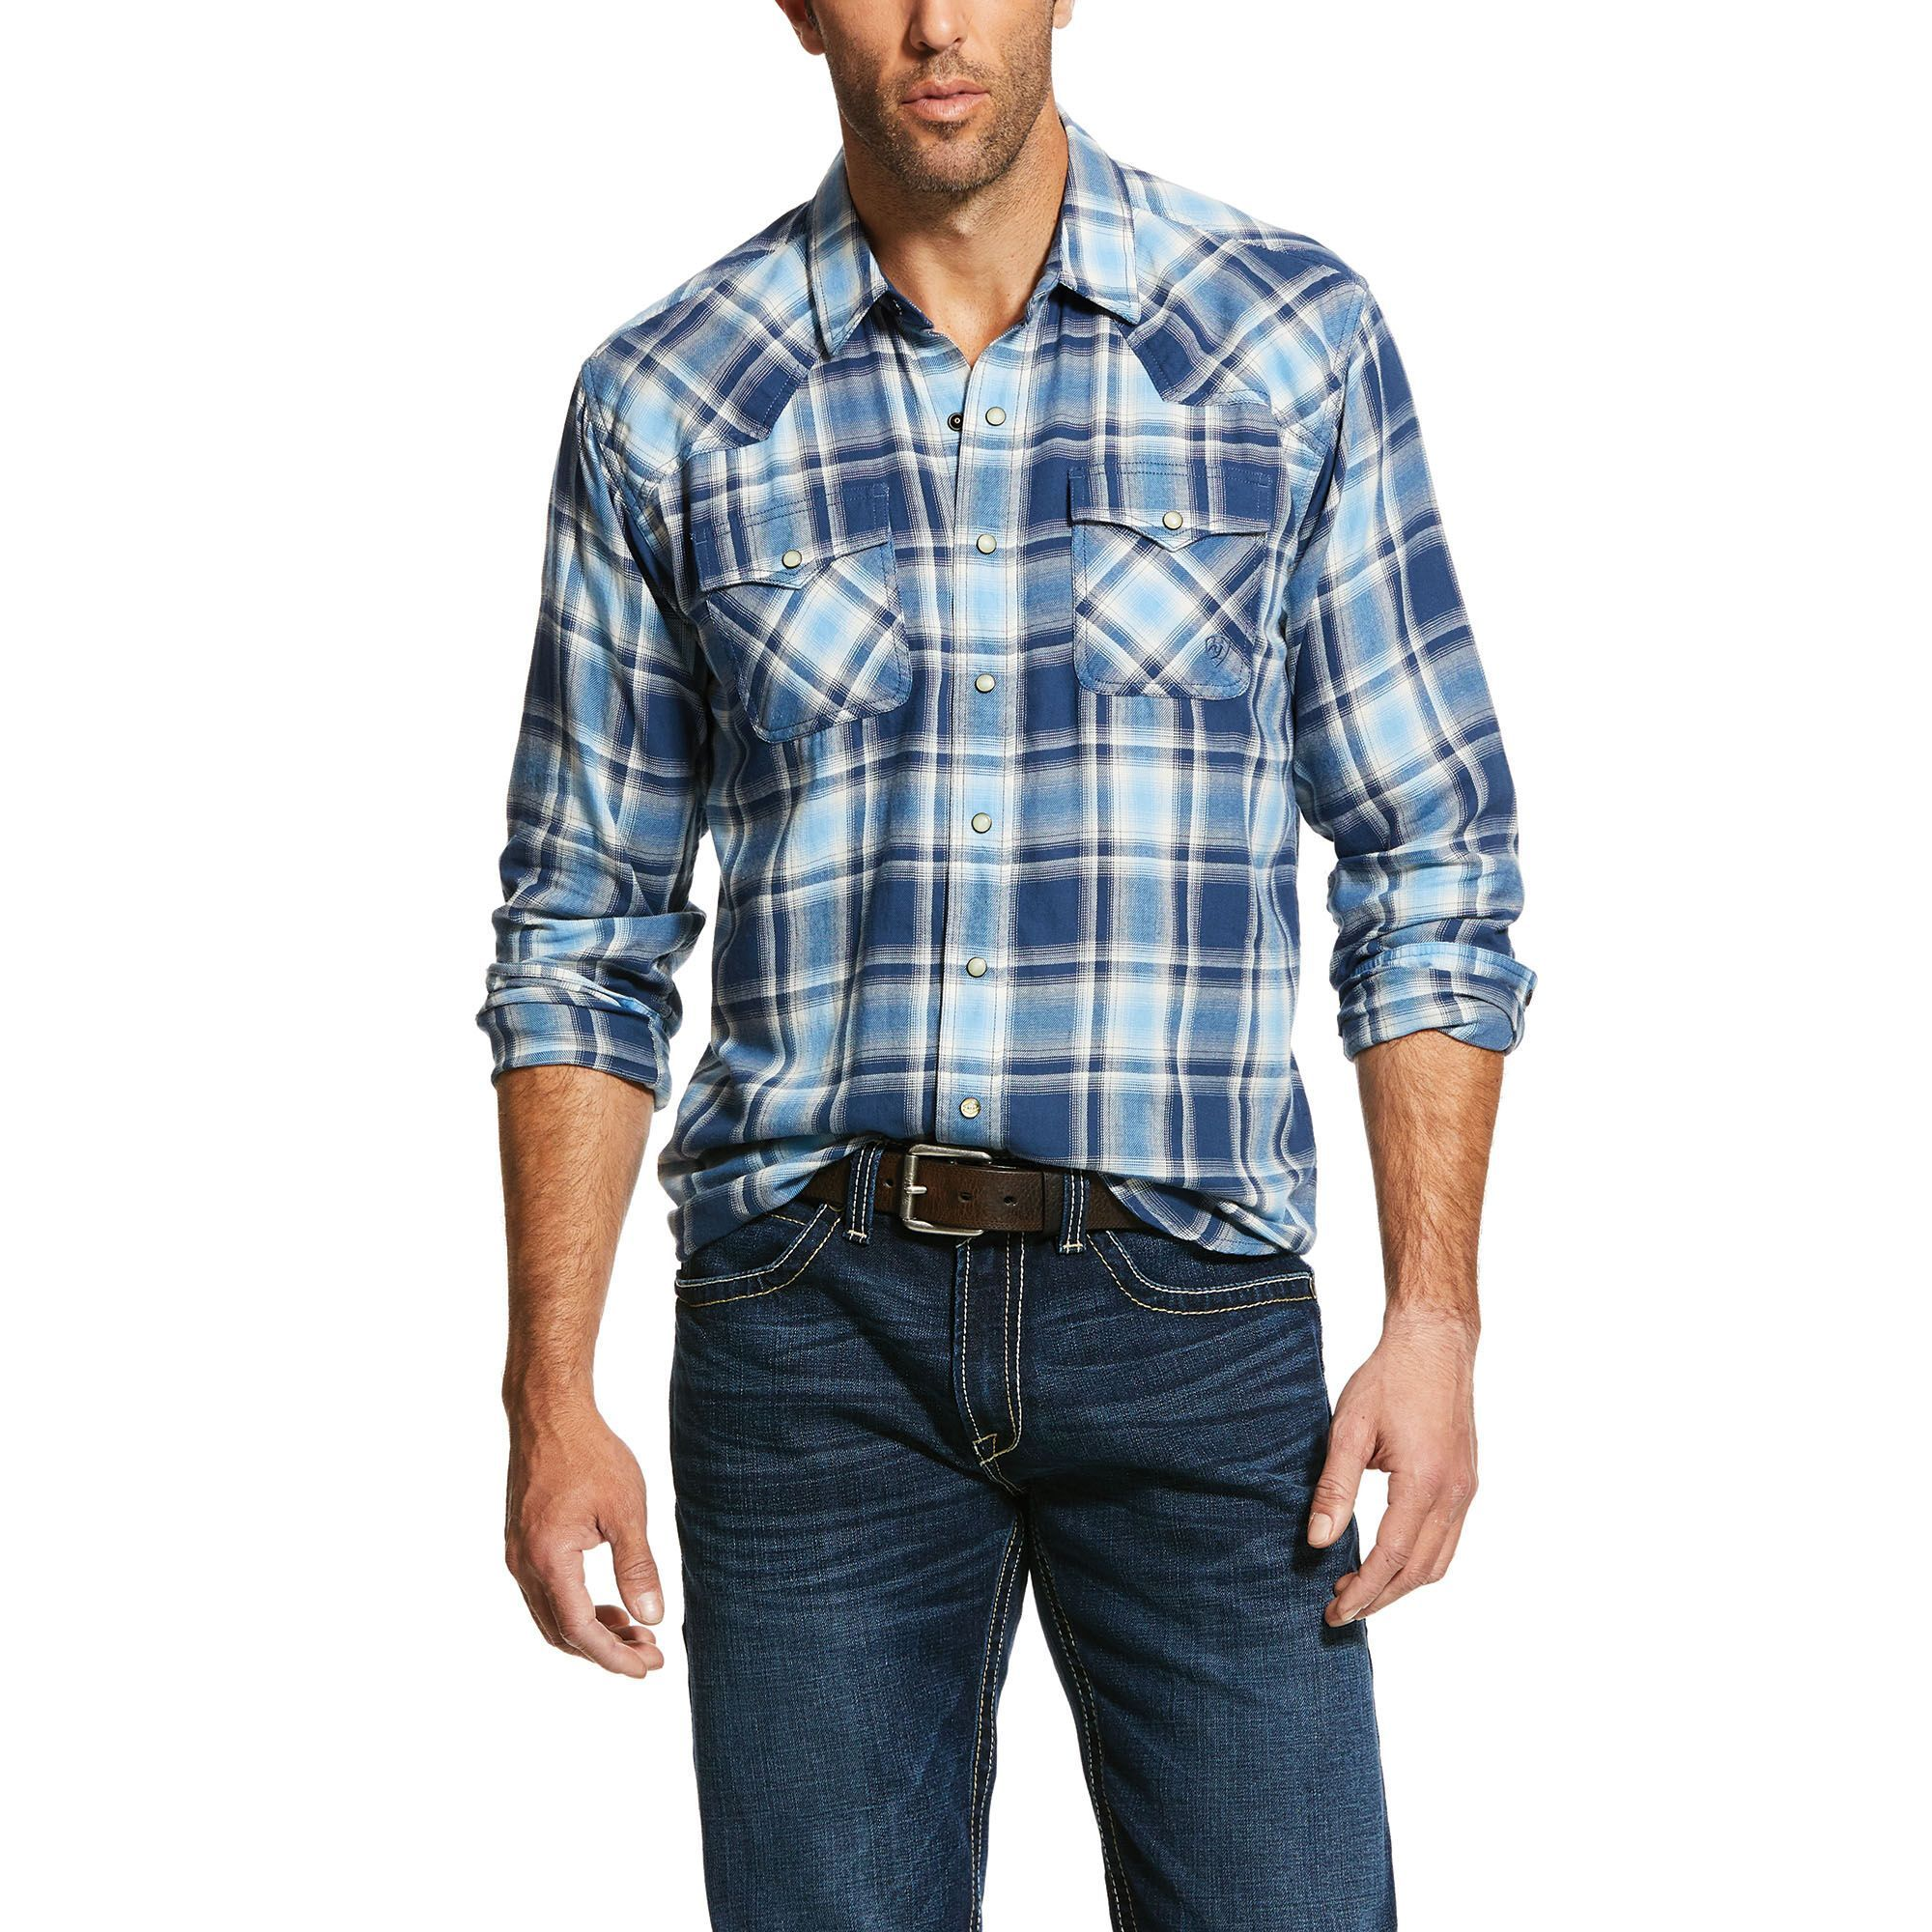 Mens Jupiter Retro Fit Shirt Cotton X-Small by Ariat - Fitness Shirts - Ideas of Fitness Shirts #fit...